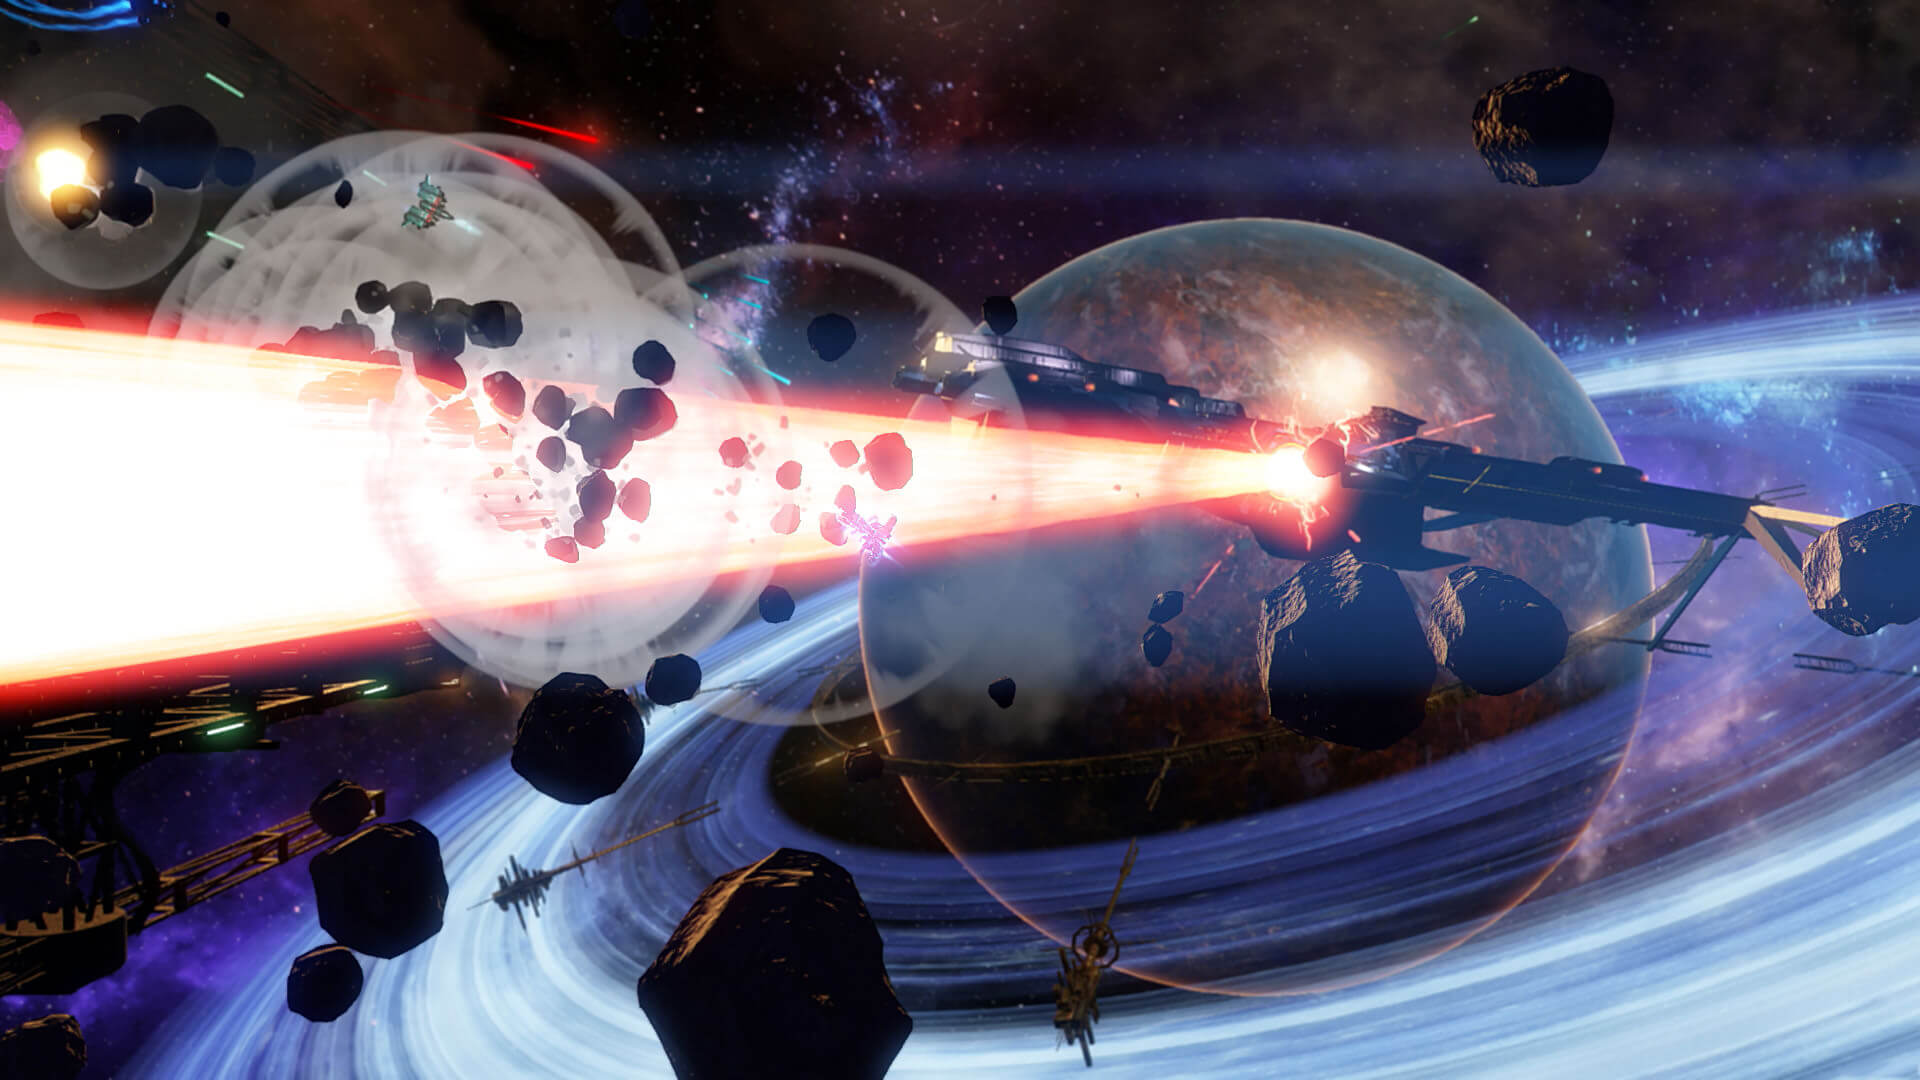 Space Shoot 'em Up, RiftStar Raiders Is Now Available